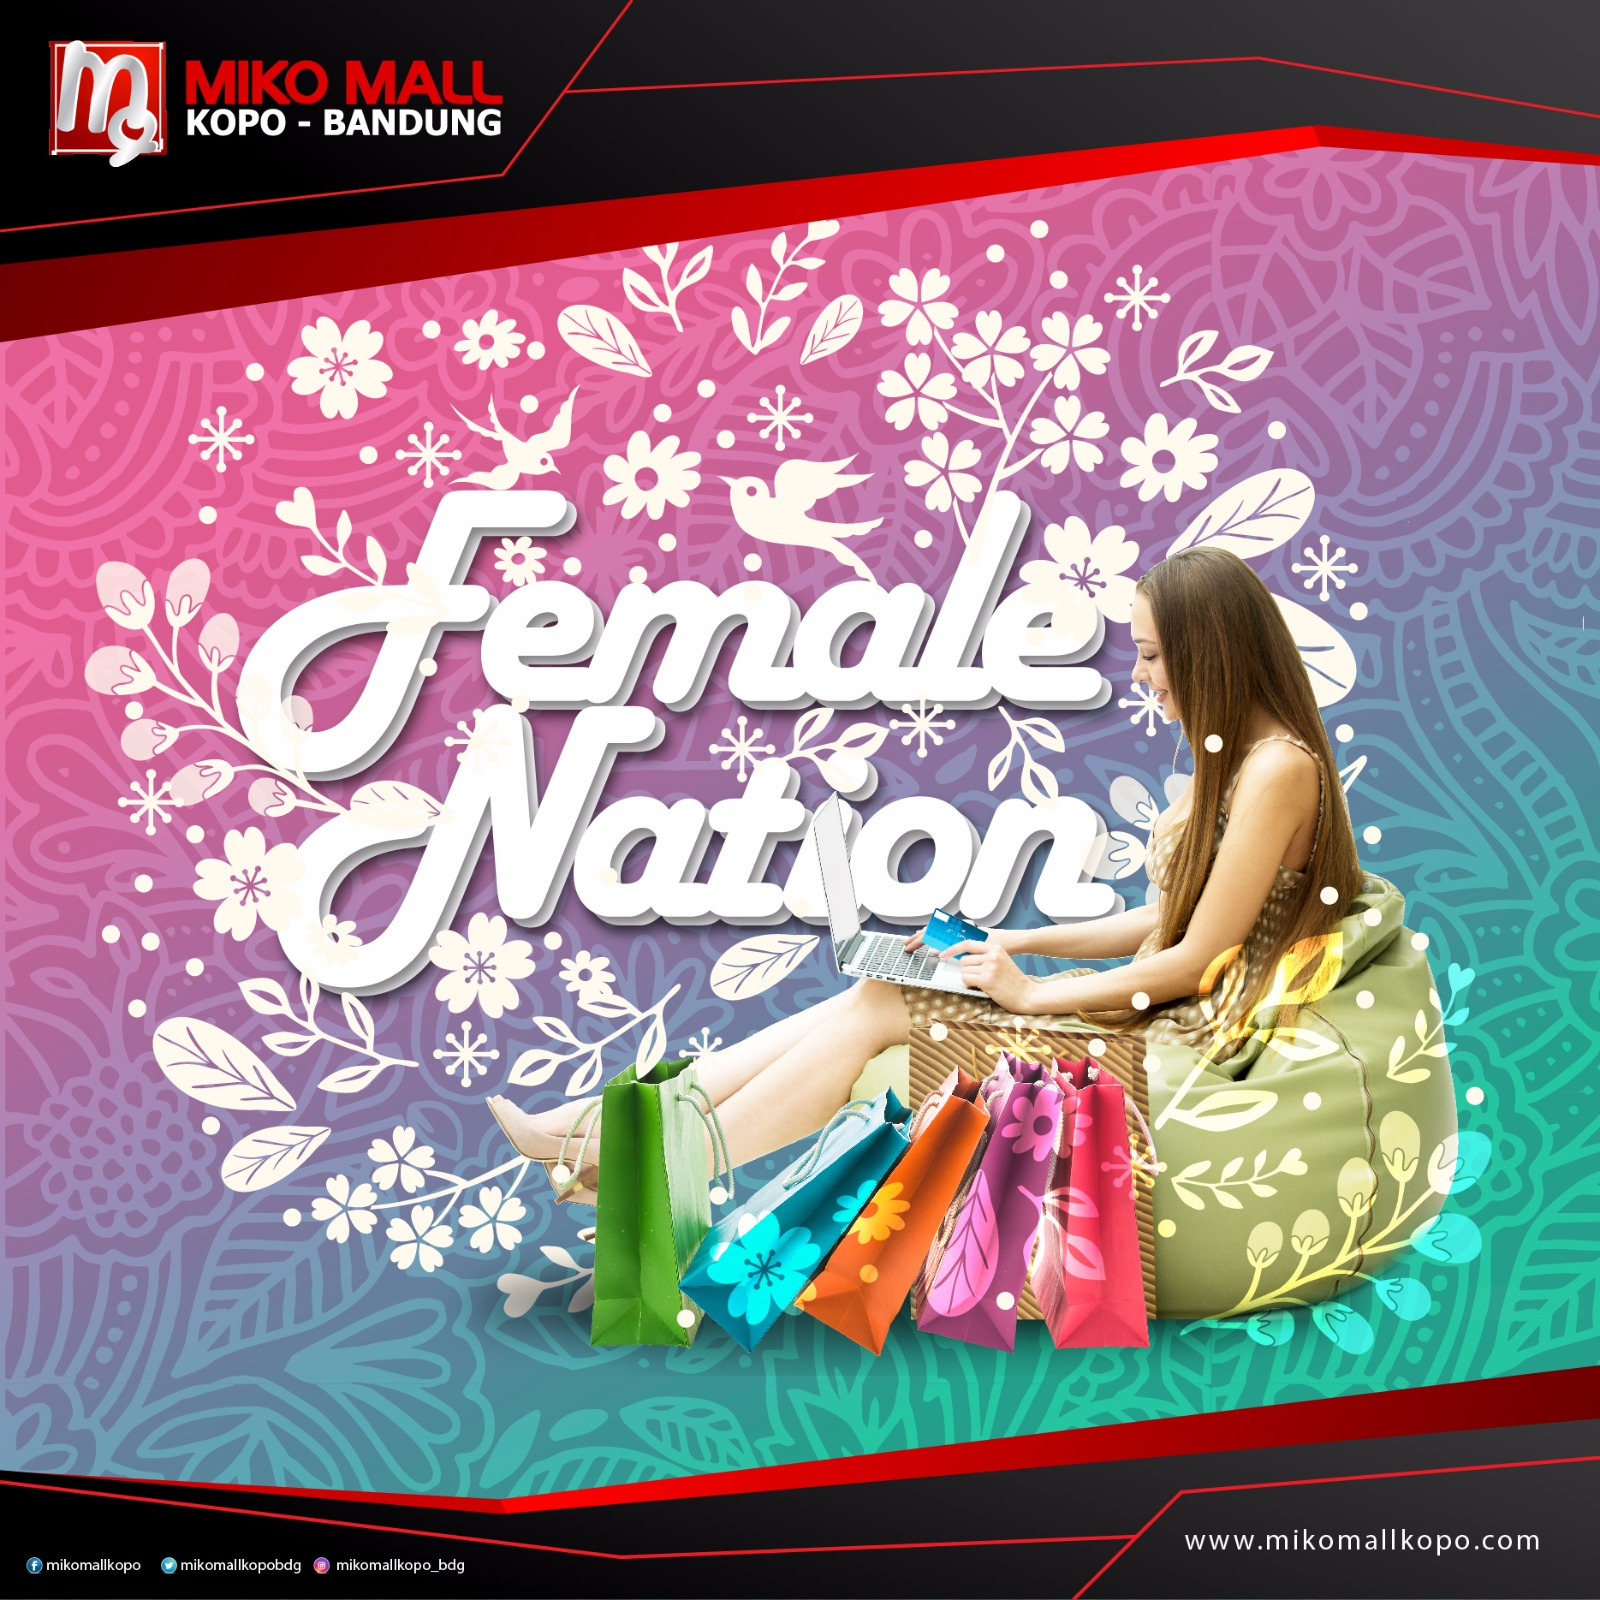 FEMALE NATION at MIKO MALL